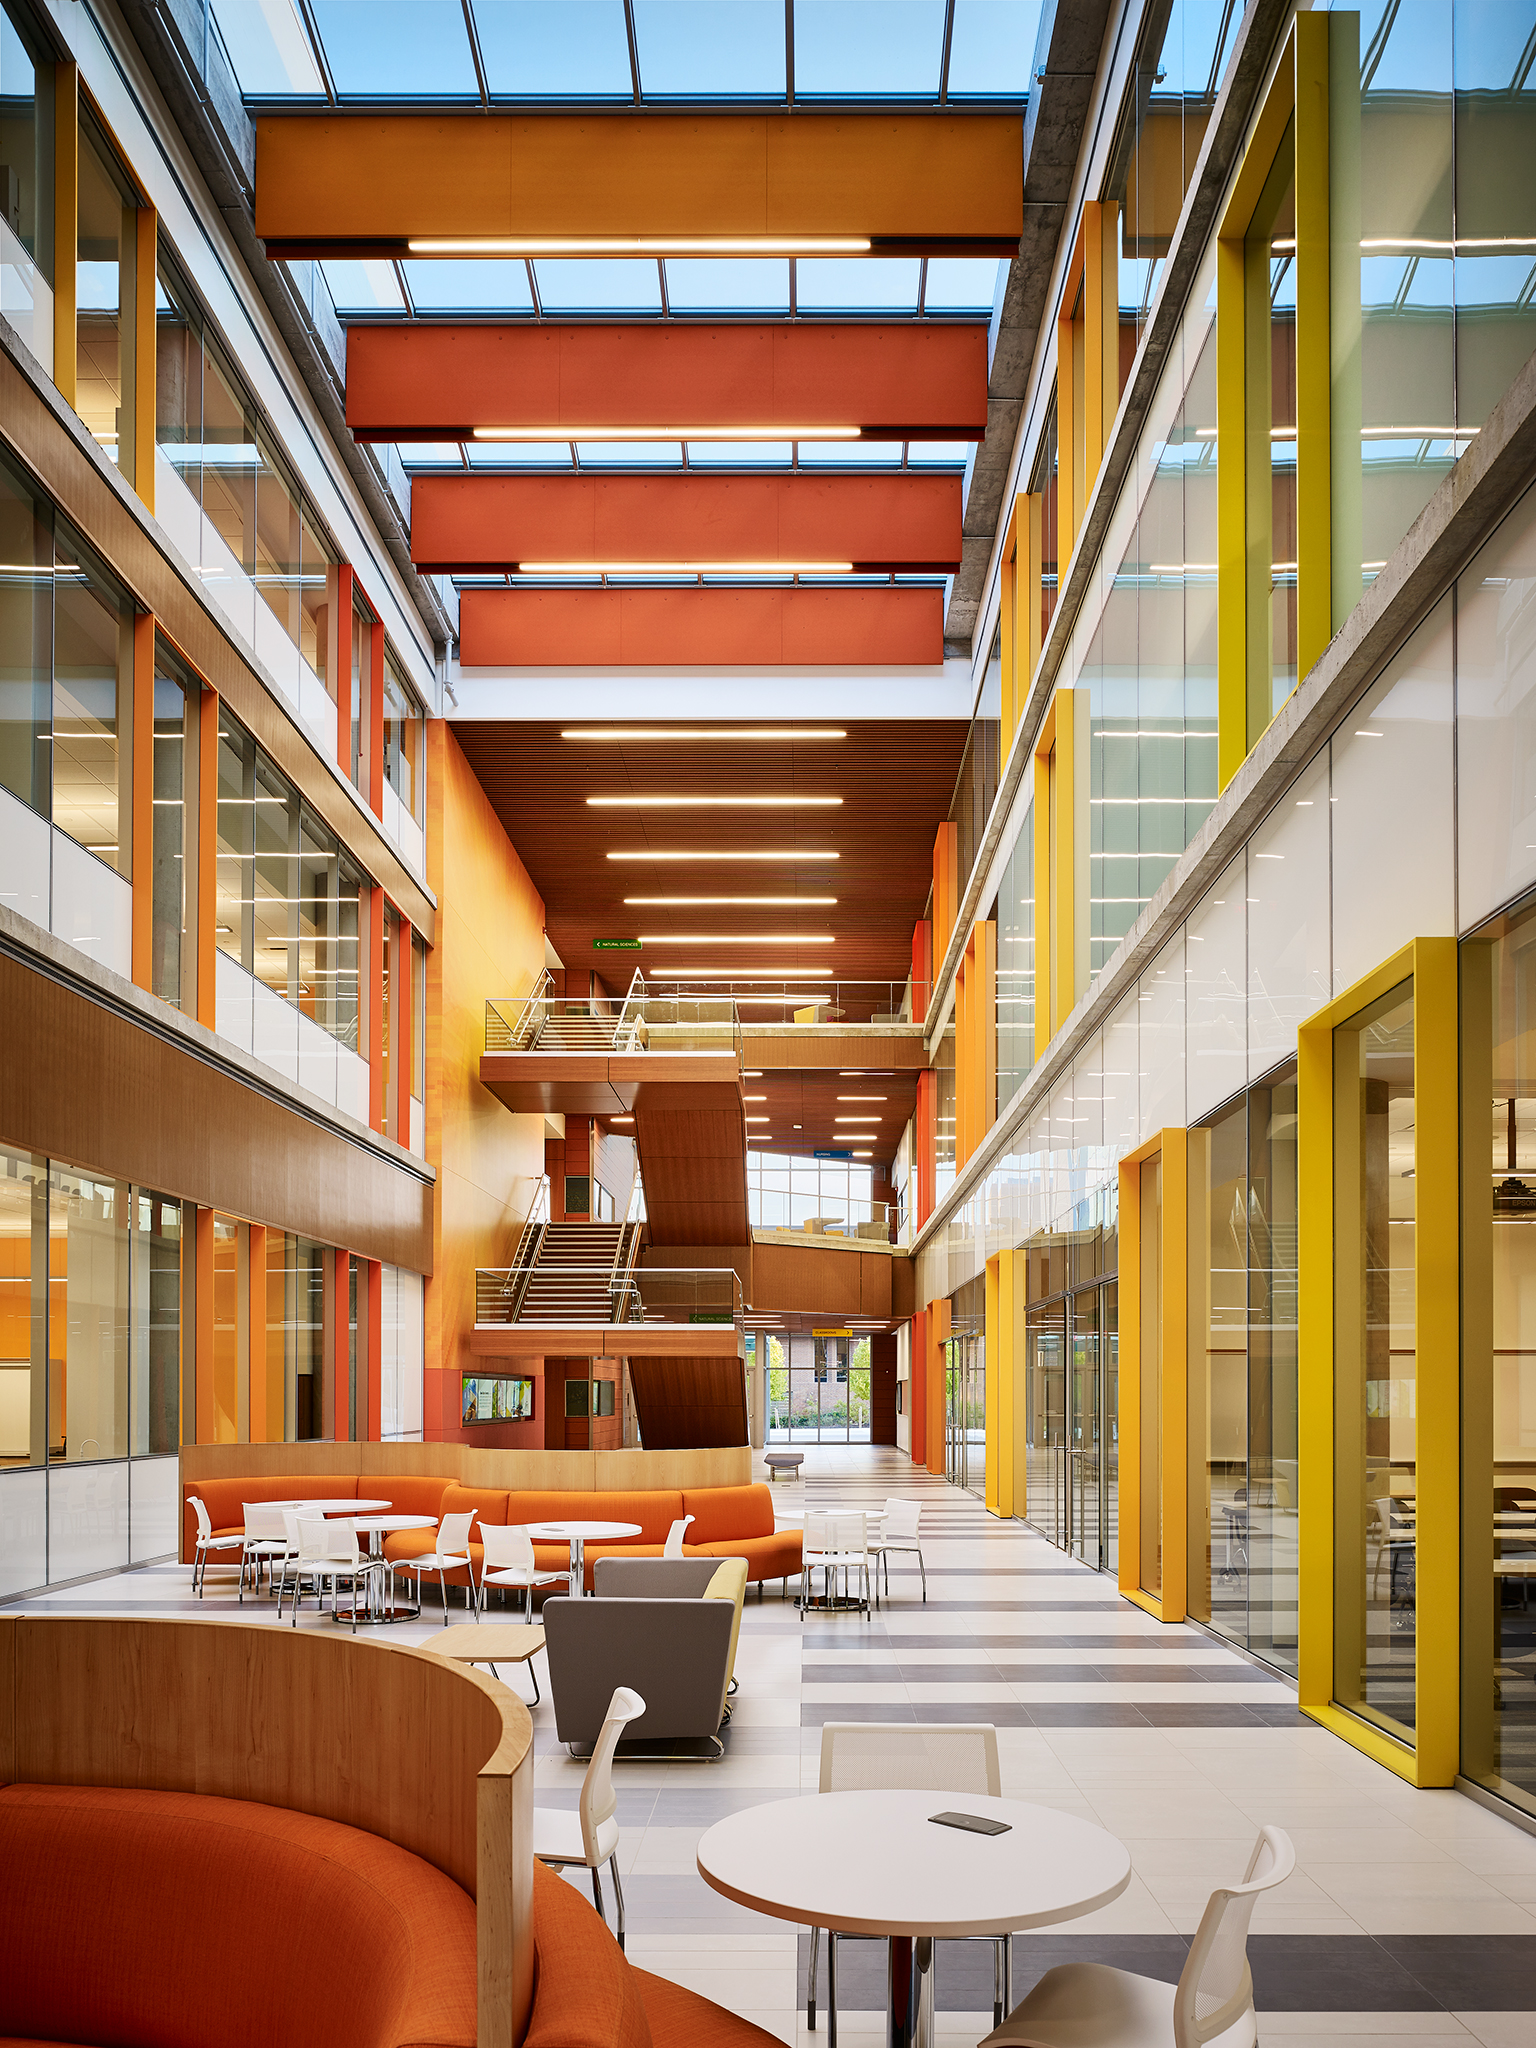 Bowie State University   Center for Natural Sciences, Mathematics + Nursing  Perkins+Will  Bowie, Maryland     View Full Project